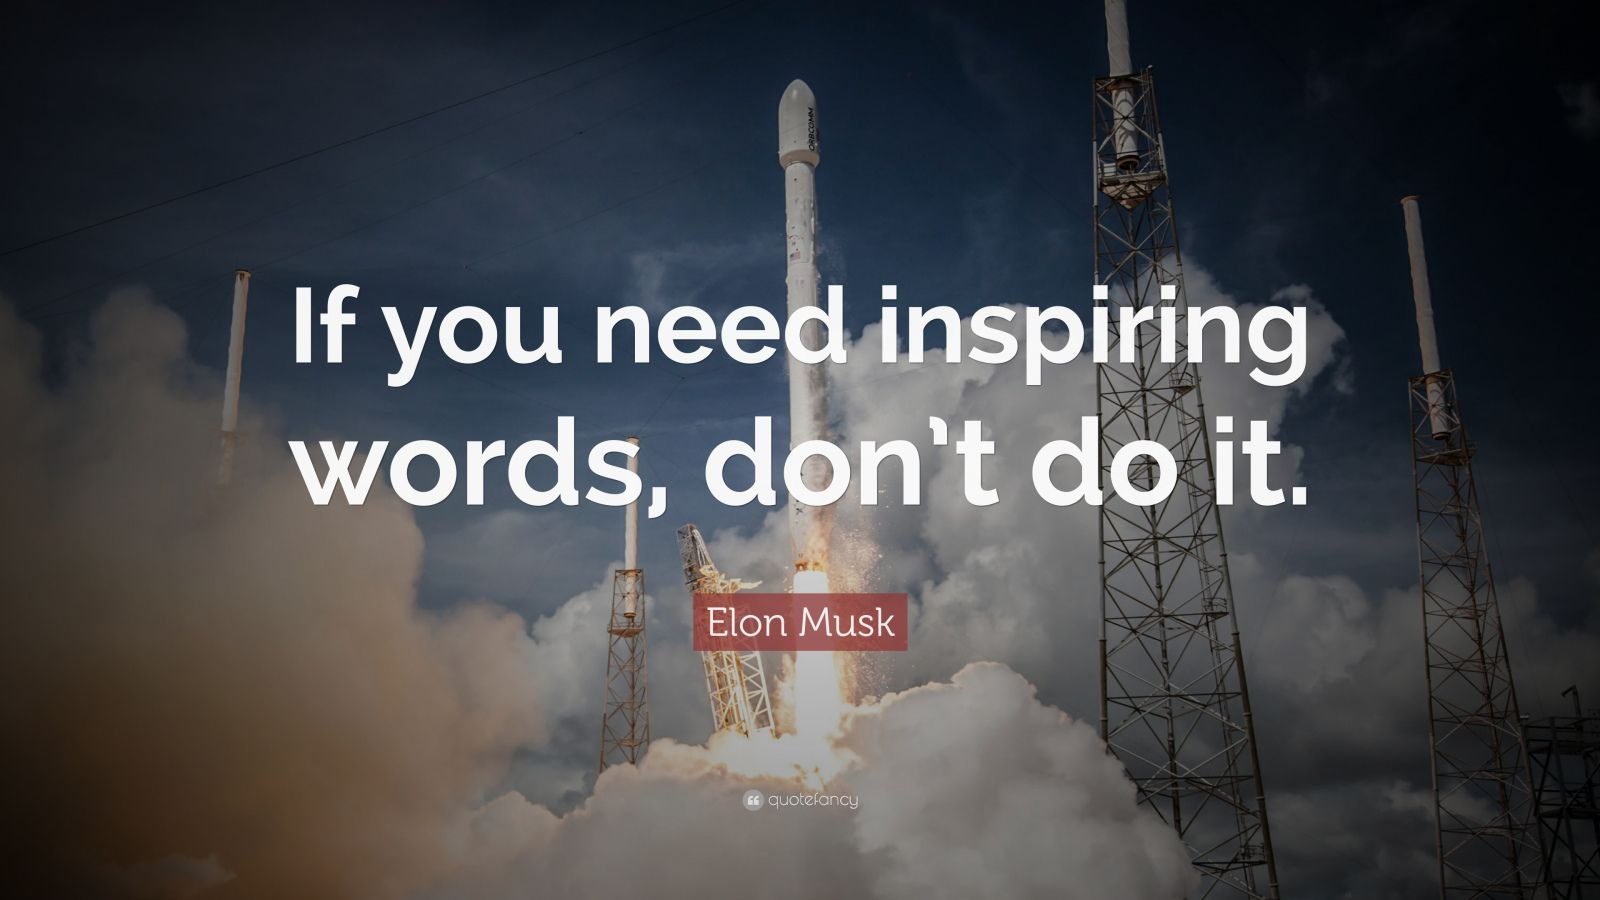 Inspirational Quotes Wallpapers Hd 1366x768 Elon Musk Quote If You Need Inspiring Words Don T Do It